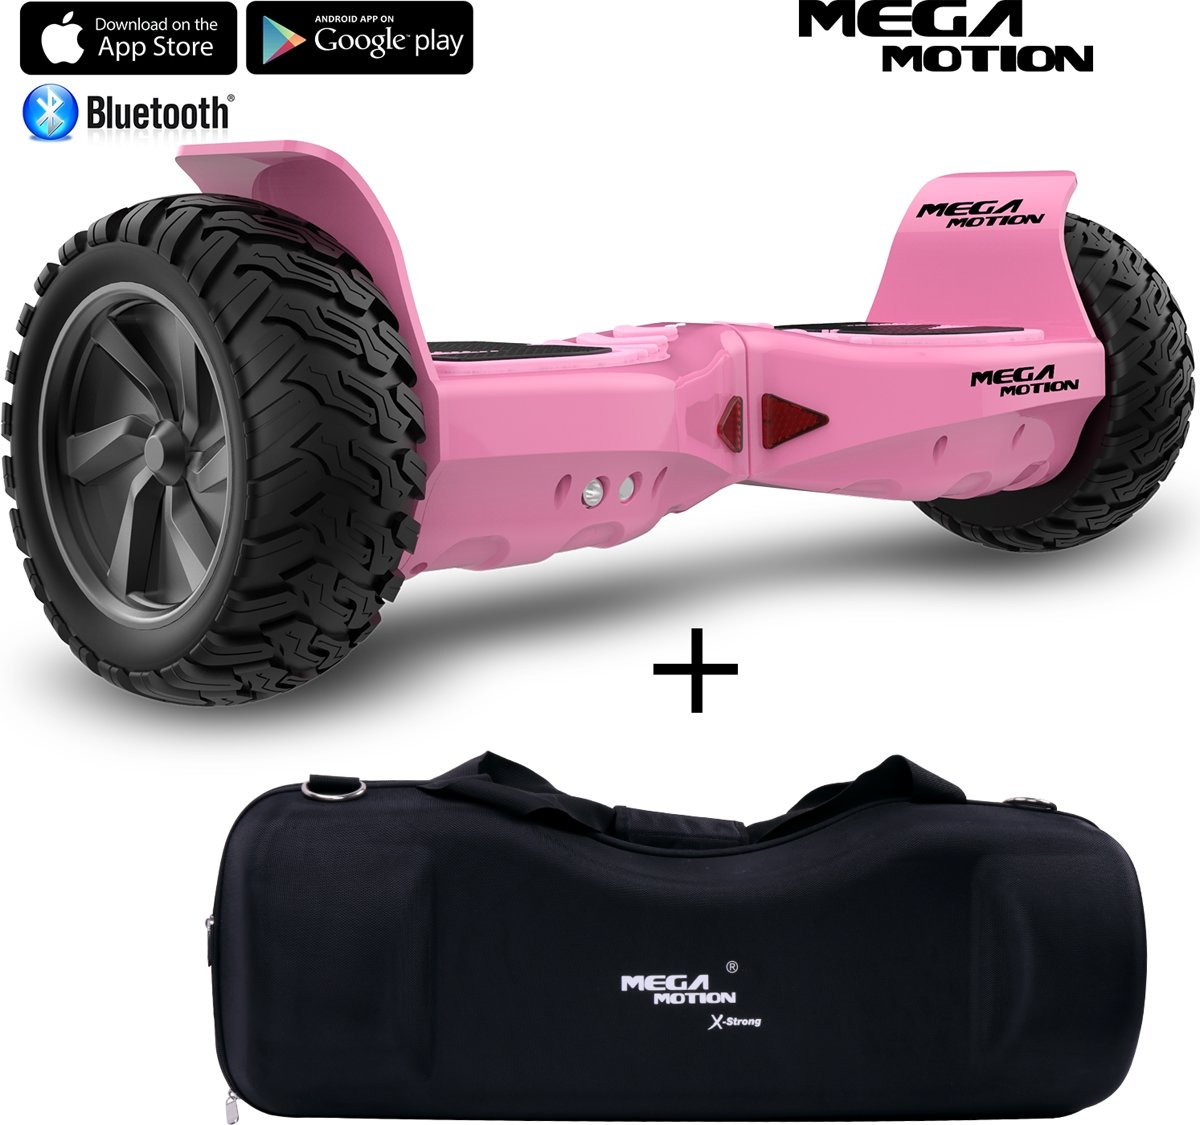 Mega Motion Hoverboard Hummer 8.5 inch SUV Hoverboard Roze + Draagbare waterdichte sporttas 8.5 inch